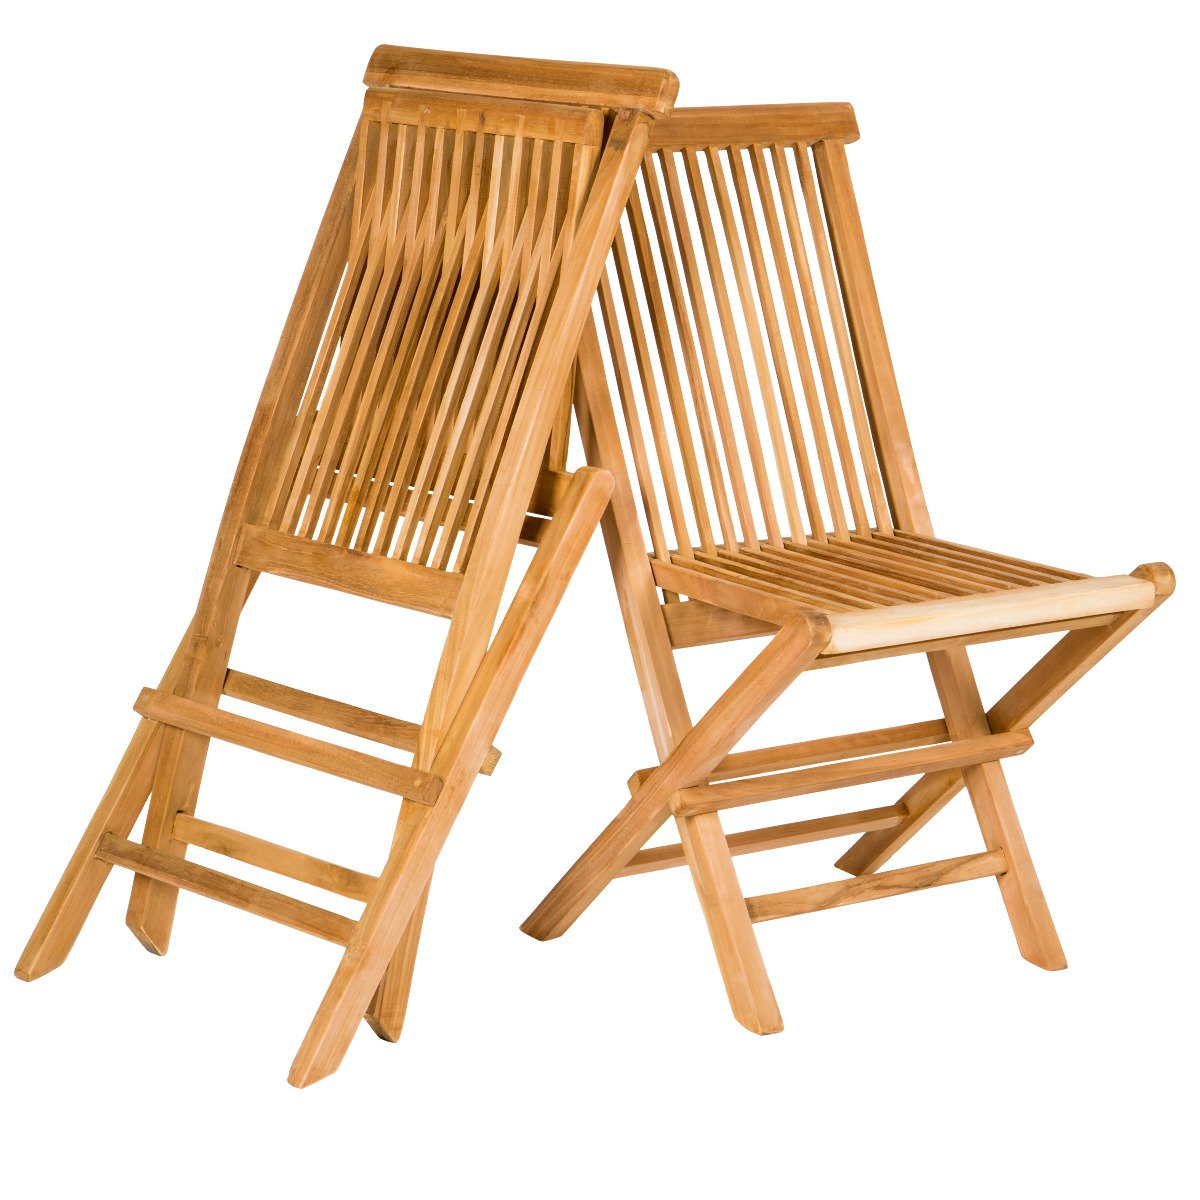 Amazon com yankee trader set of 2 traditional teak folding wooden chairs for outdoor patio backyard or garden kitchen dining